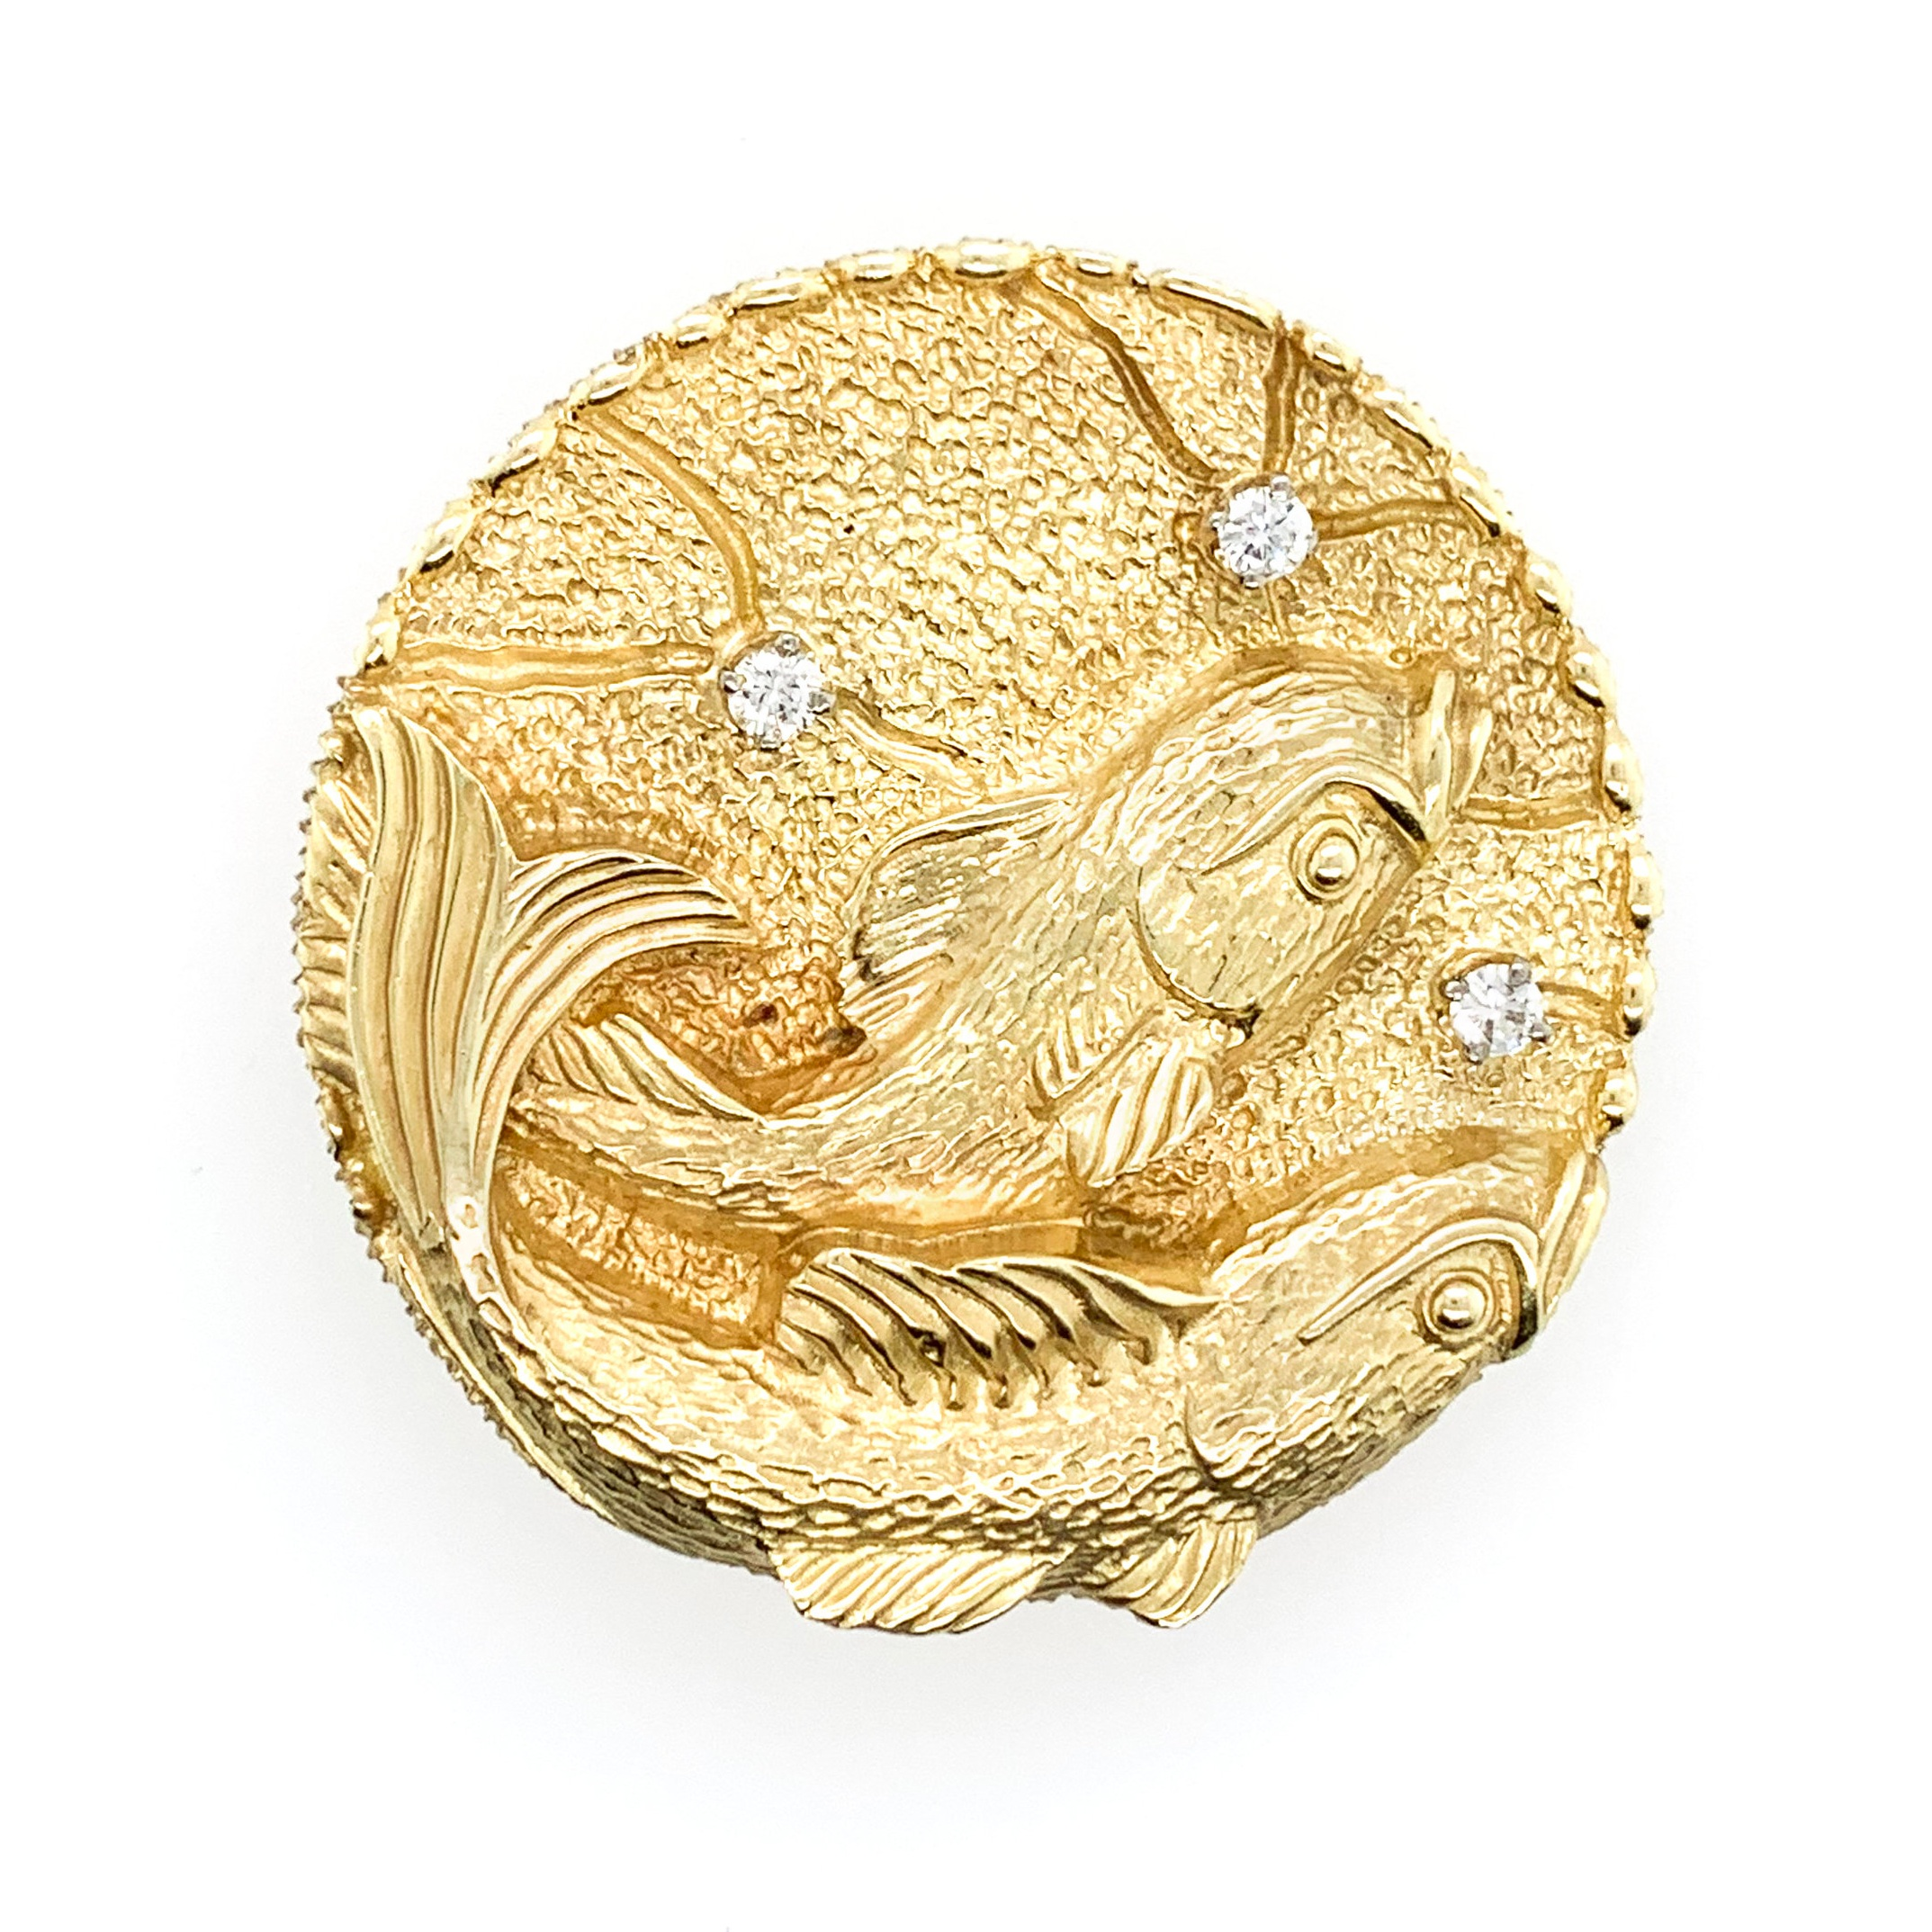 La Triomphe Gold Fish Brooch